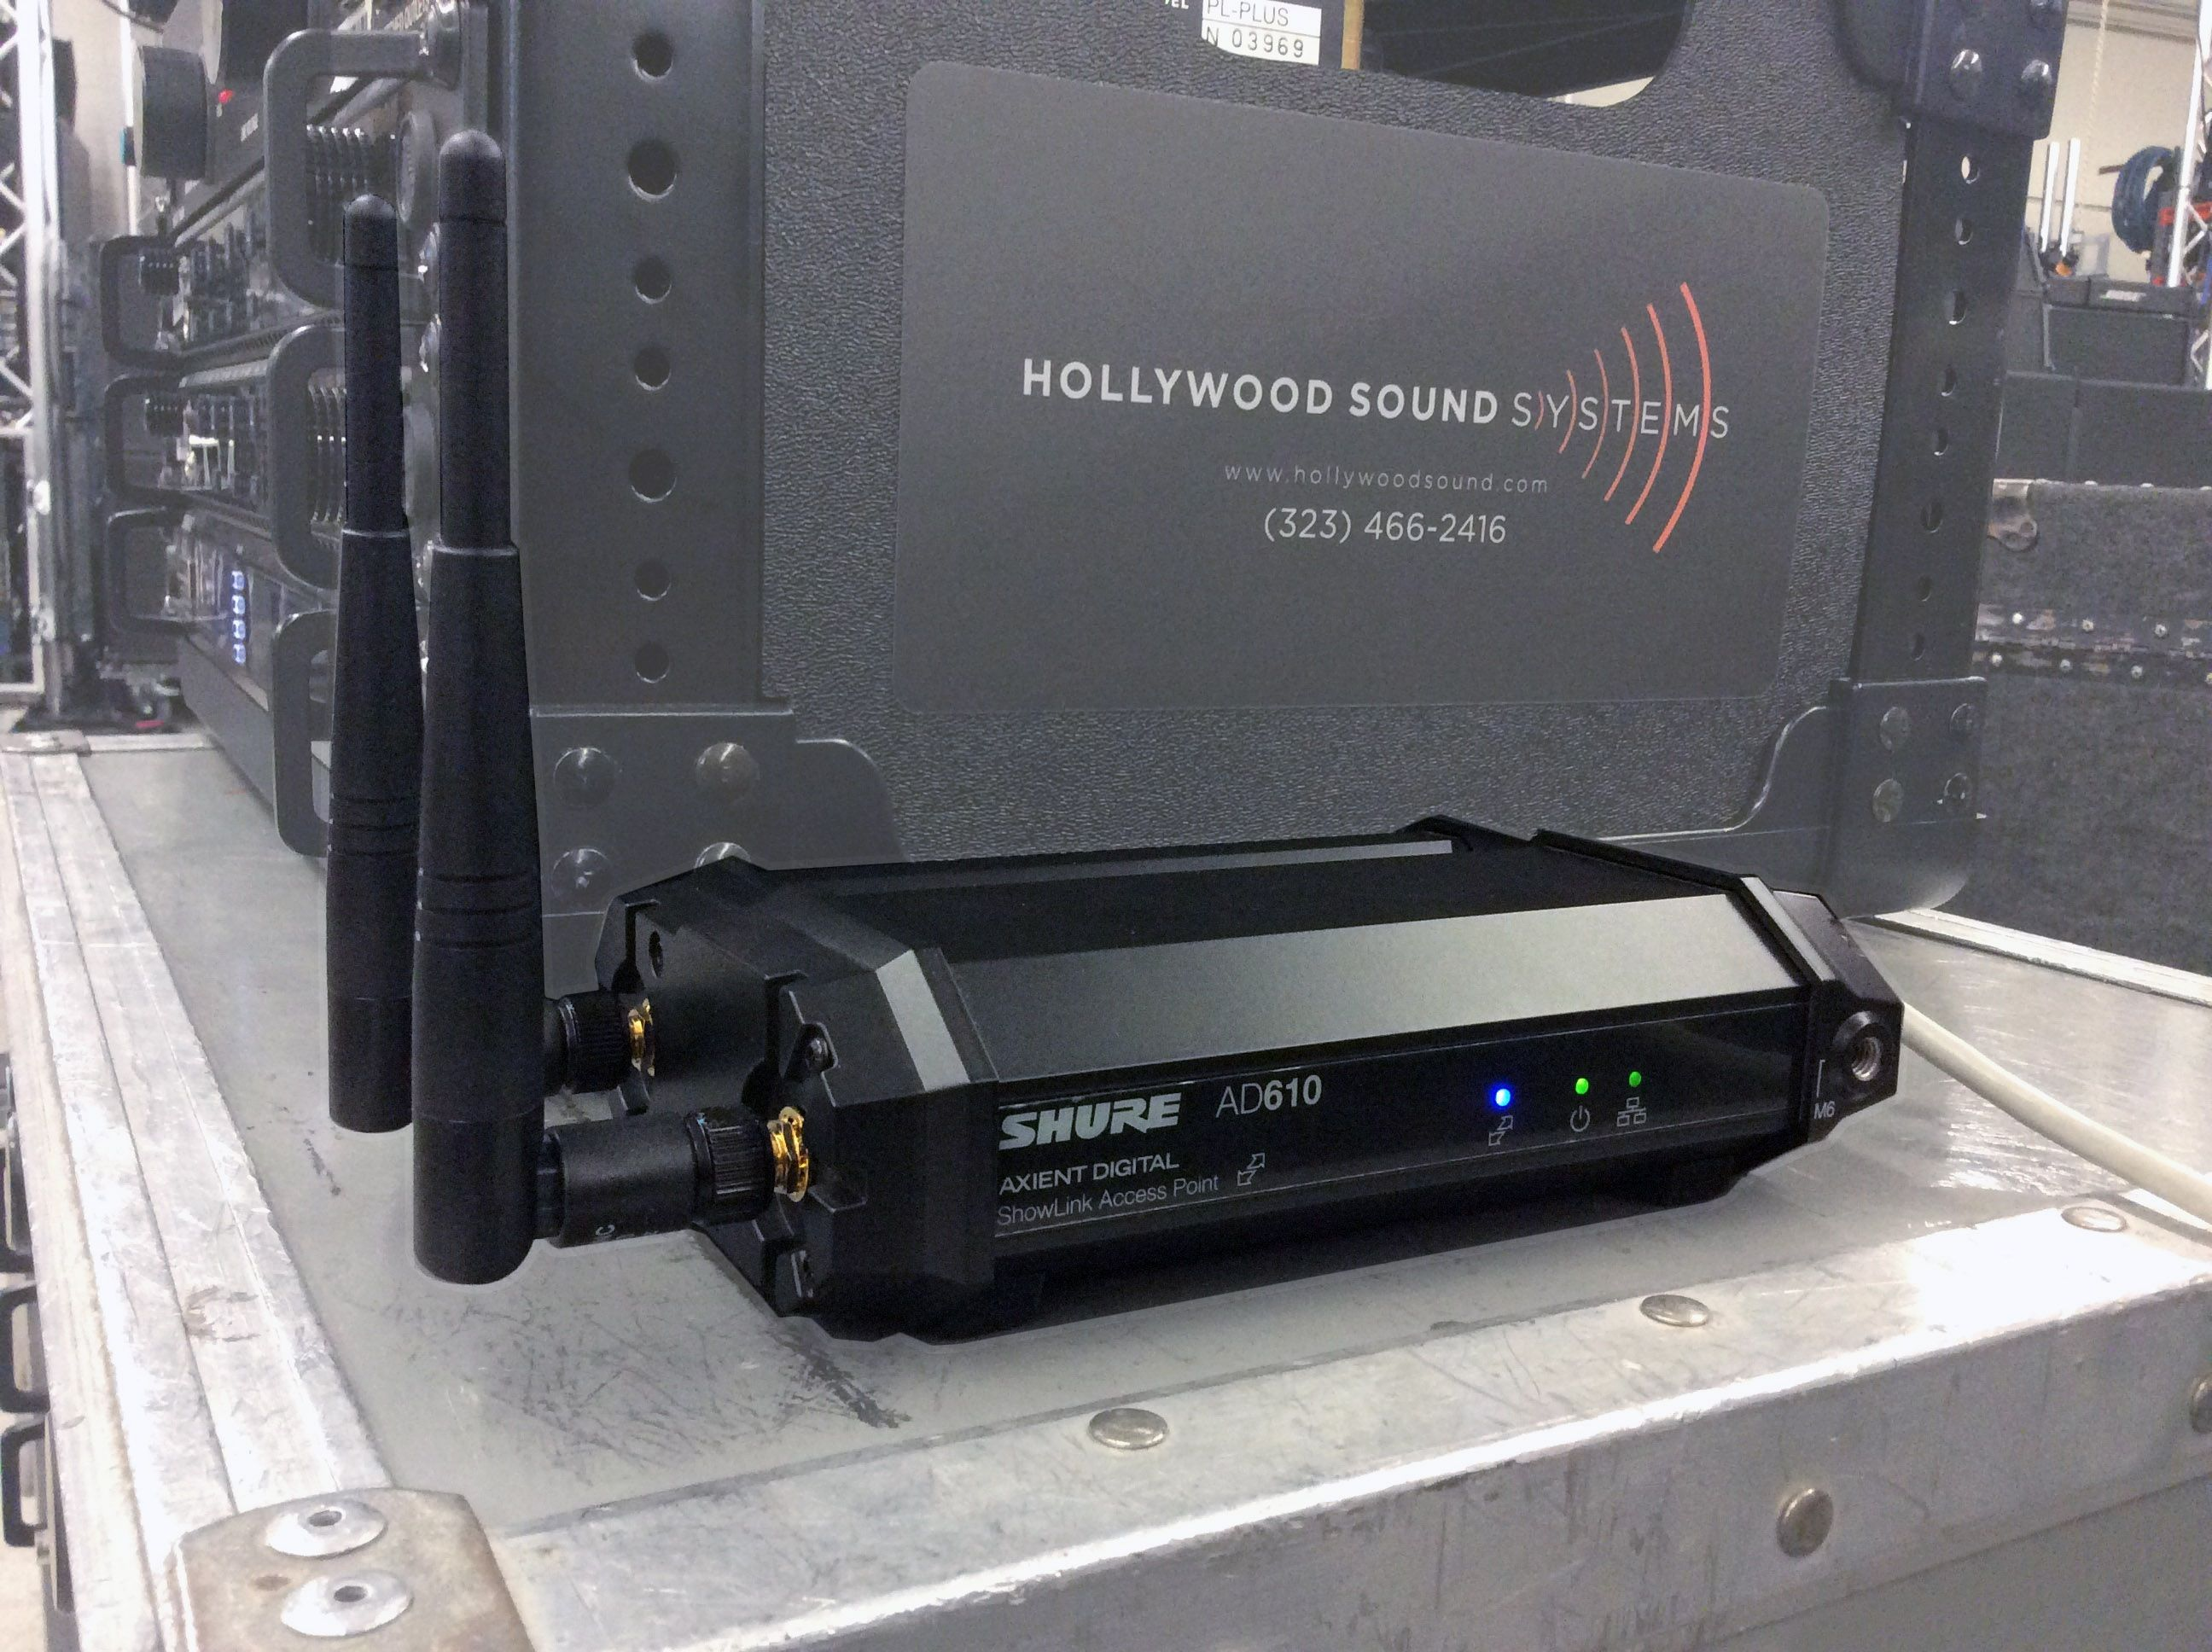 AD610 Diversity ShowLink™ Access Point at Hollywood Sound Systems